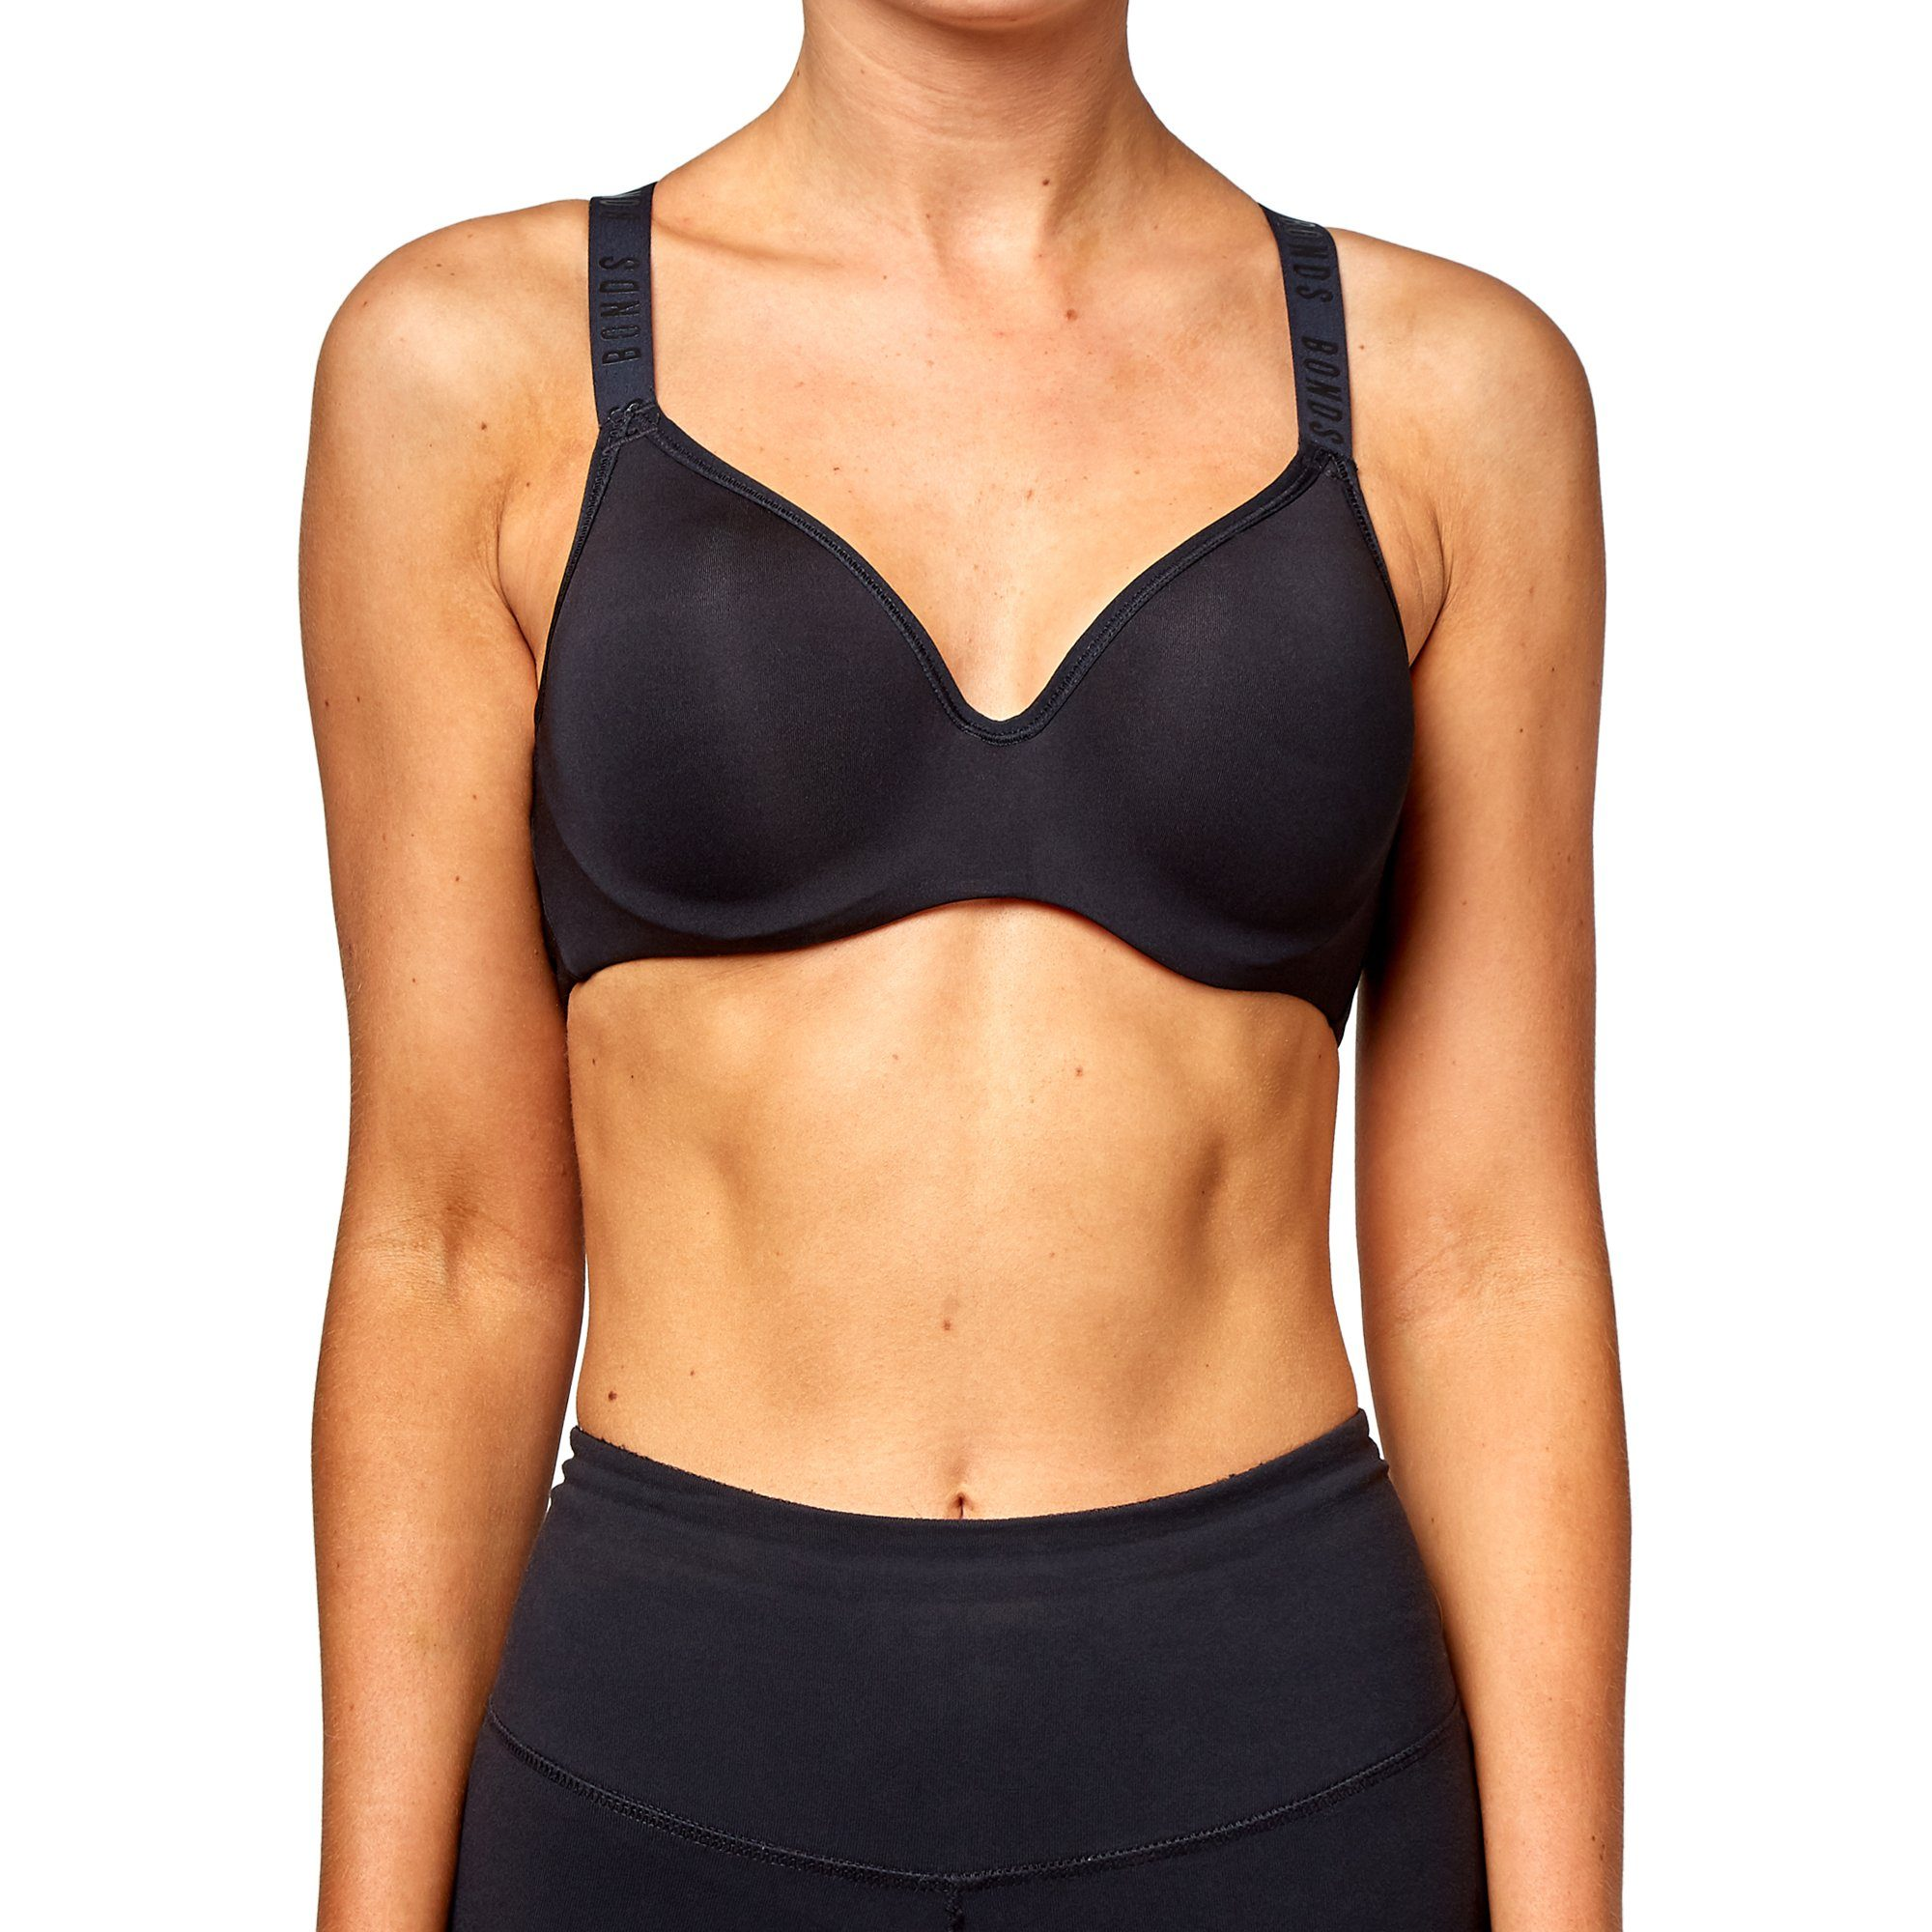 Bonds Women's Sporty Top Bra - Black Onyx Apparel Bonds